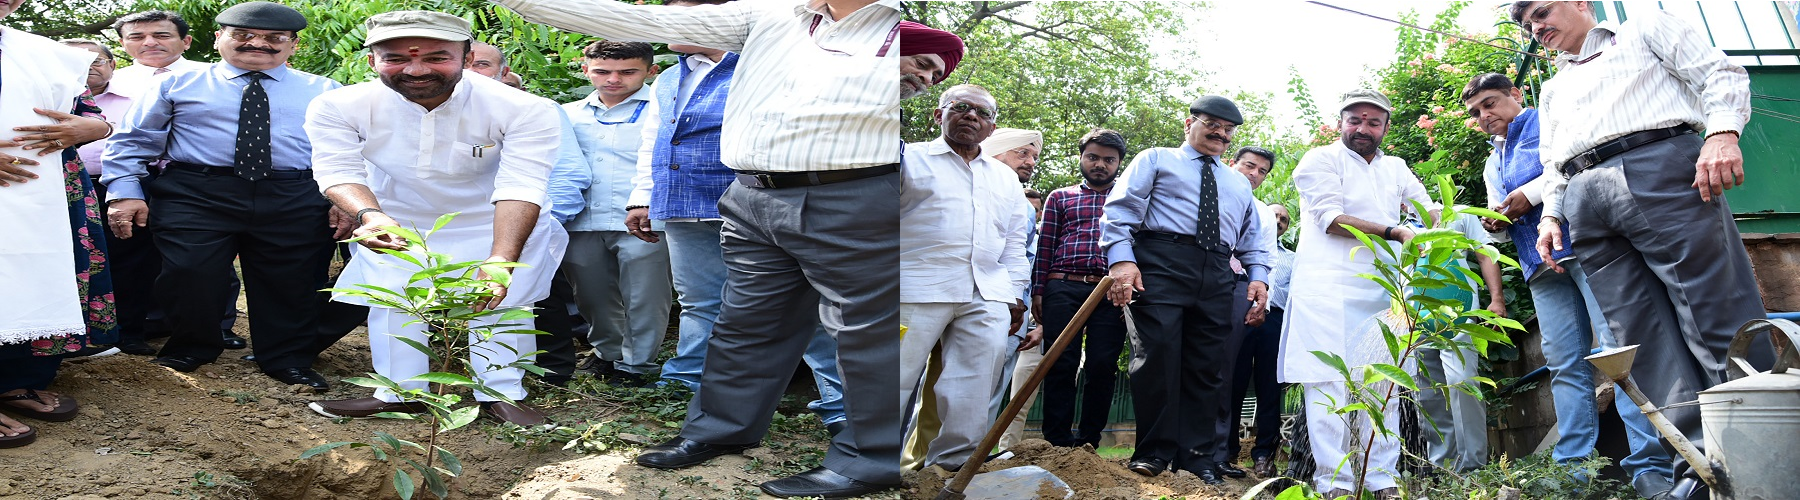 Union Minister of State for Home Affairs Shri G. Kishan Reddy planting a sapling at the  Telangana Bhawan, New Delhi on the occasion of World Environment Day on June 05,2019 .